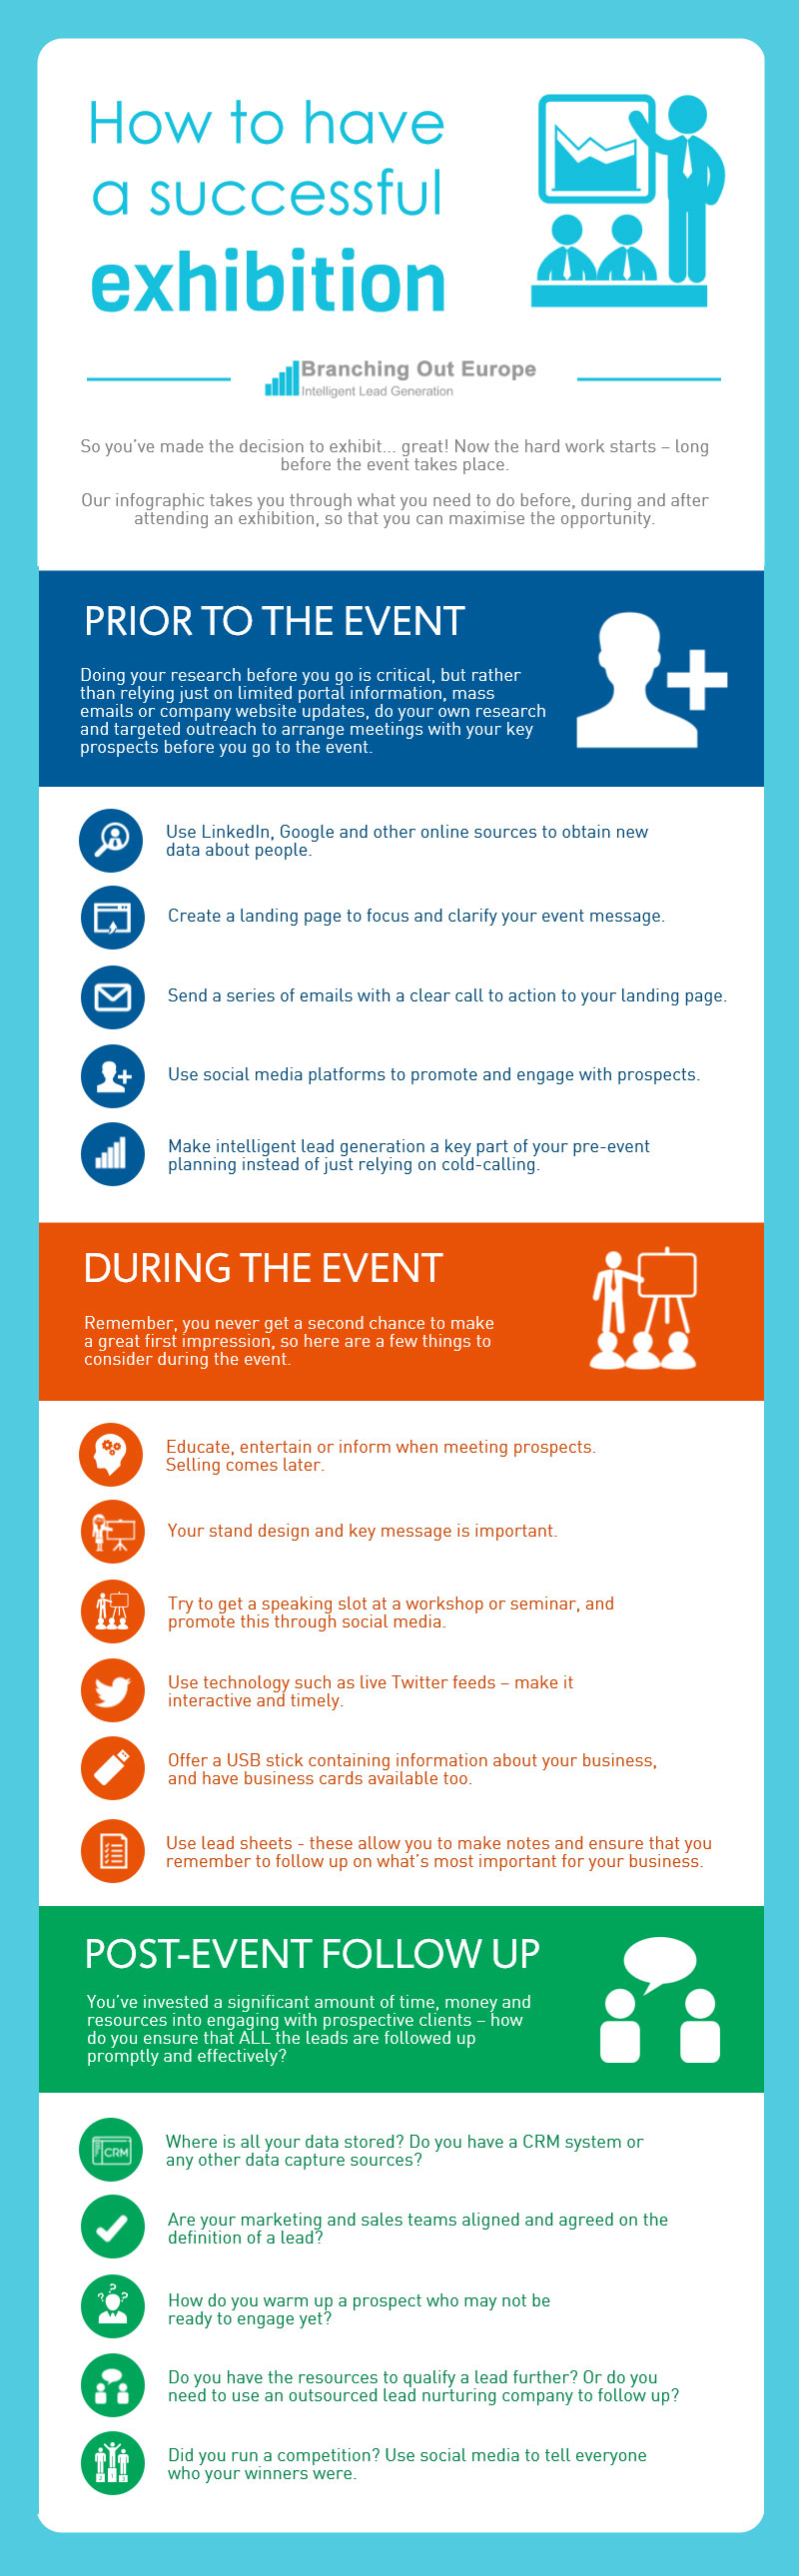 How to have a successful exhibition B2B Marketing infographic